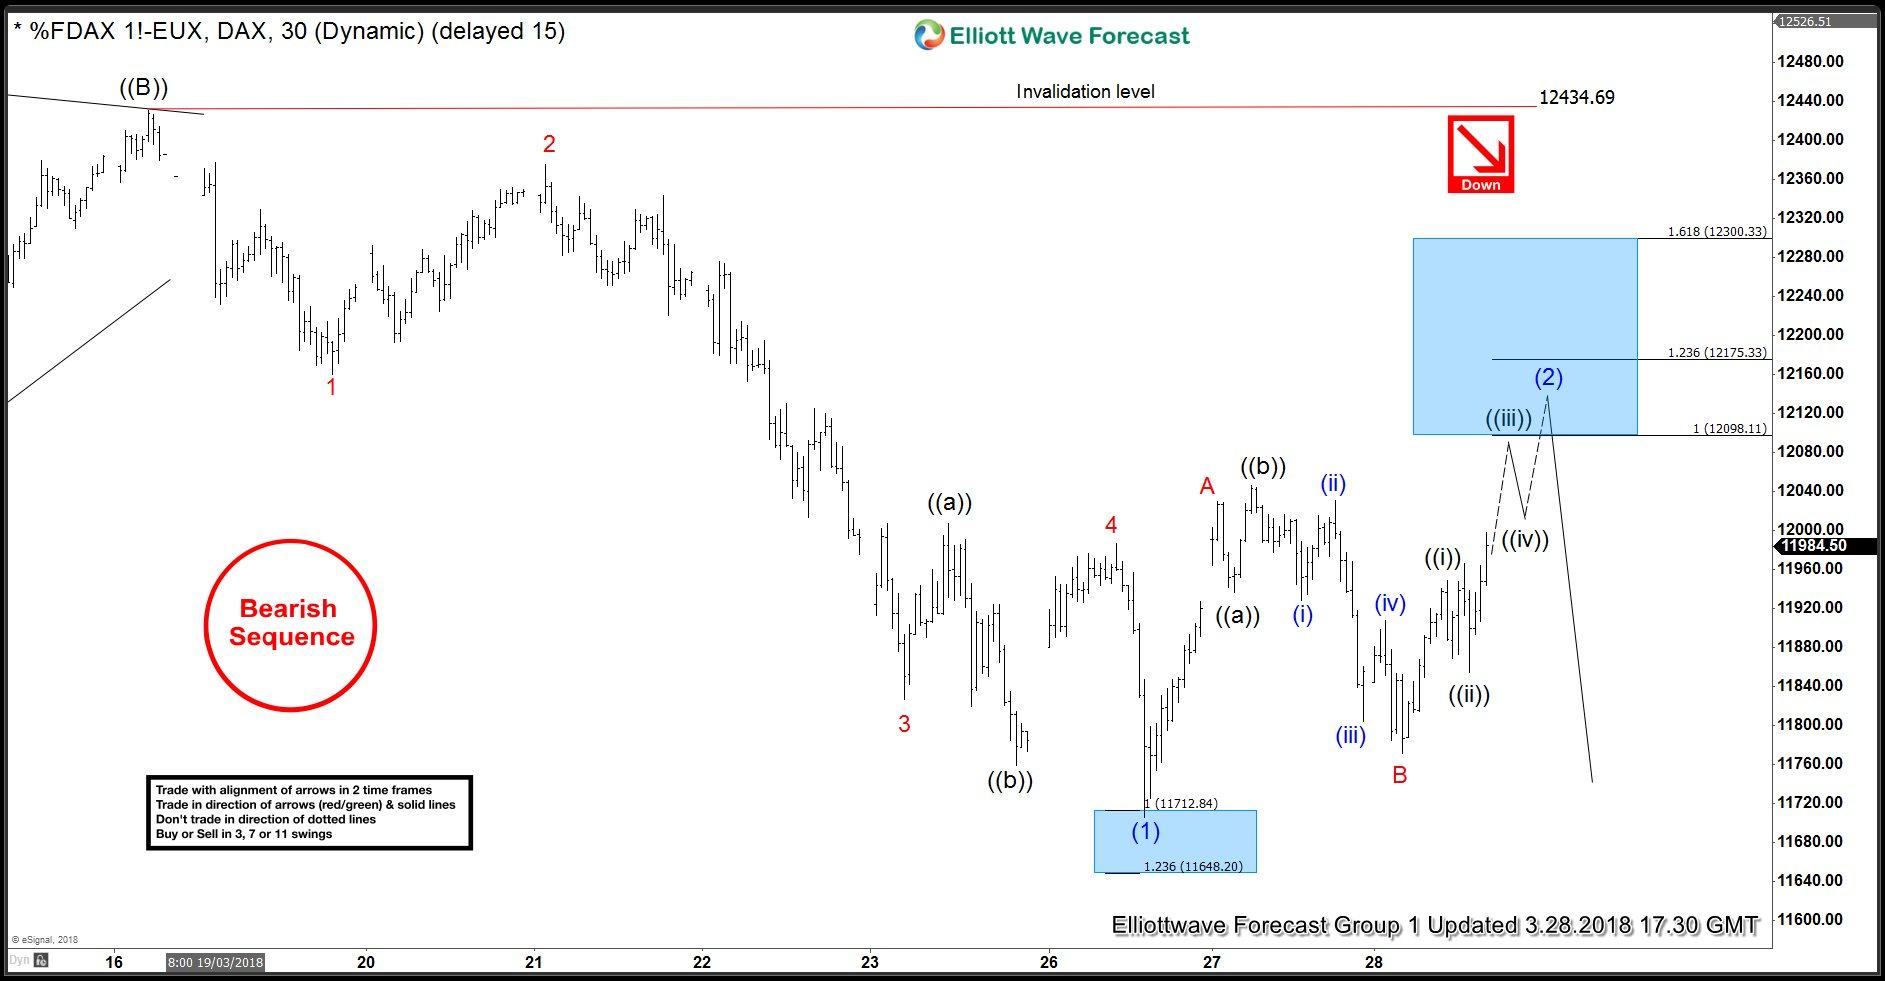 DAX Elliott Wave View 3.28.2018